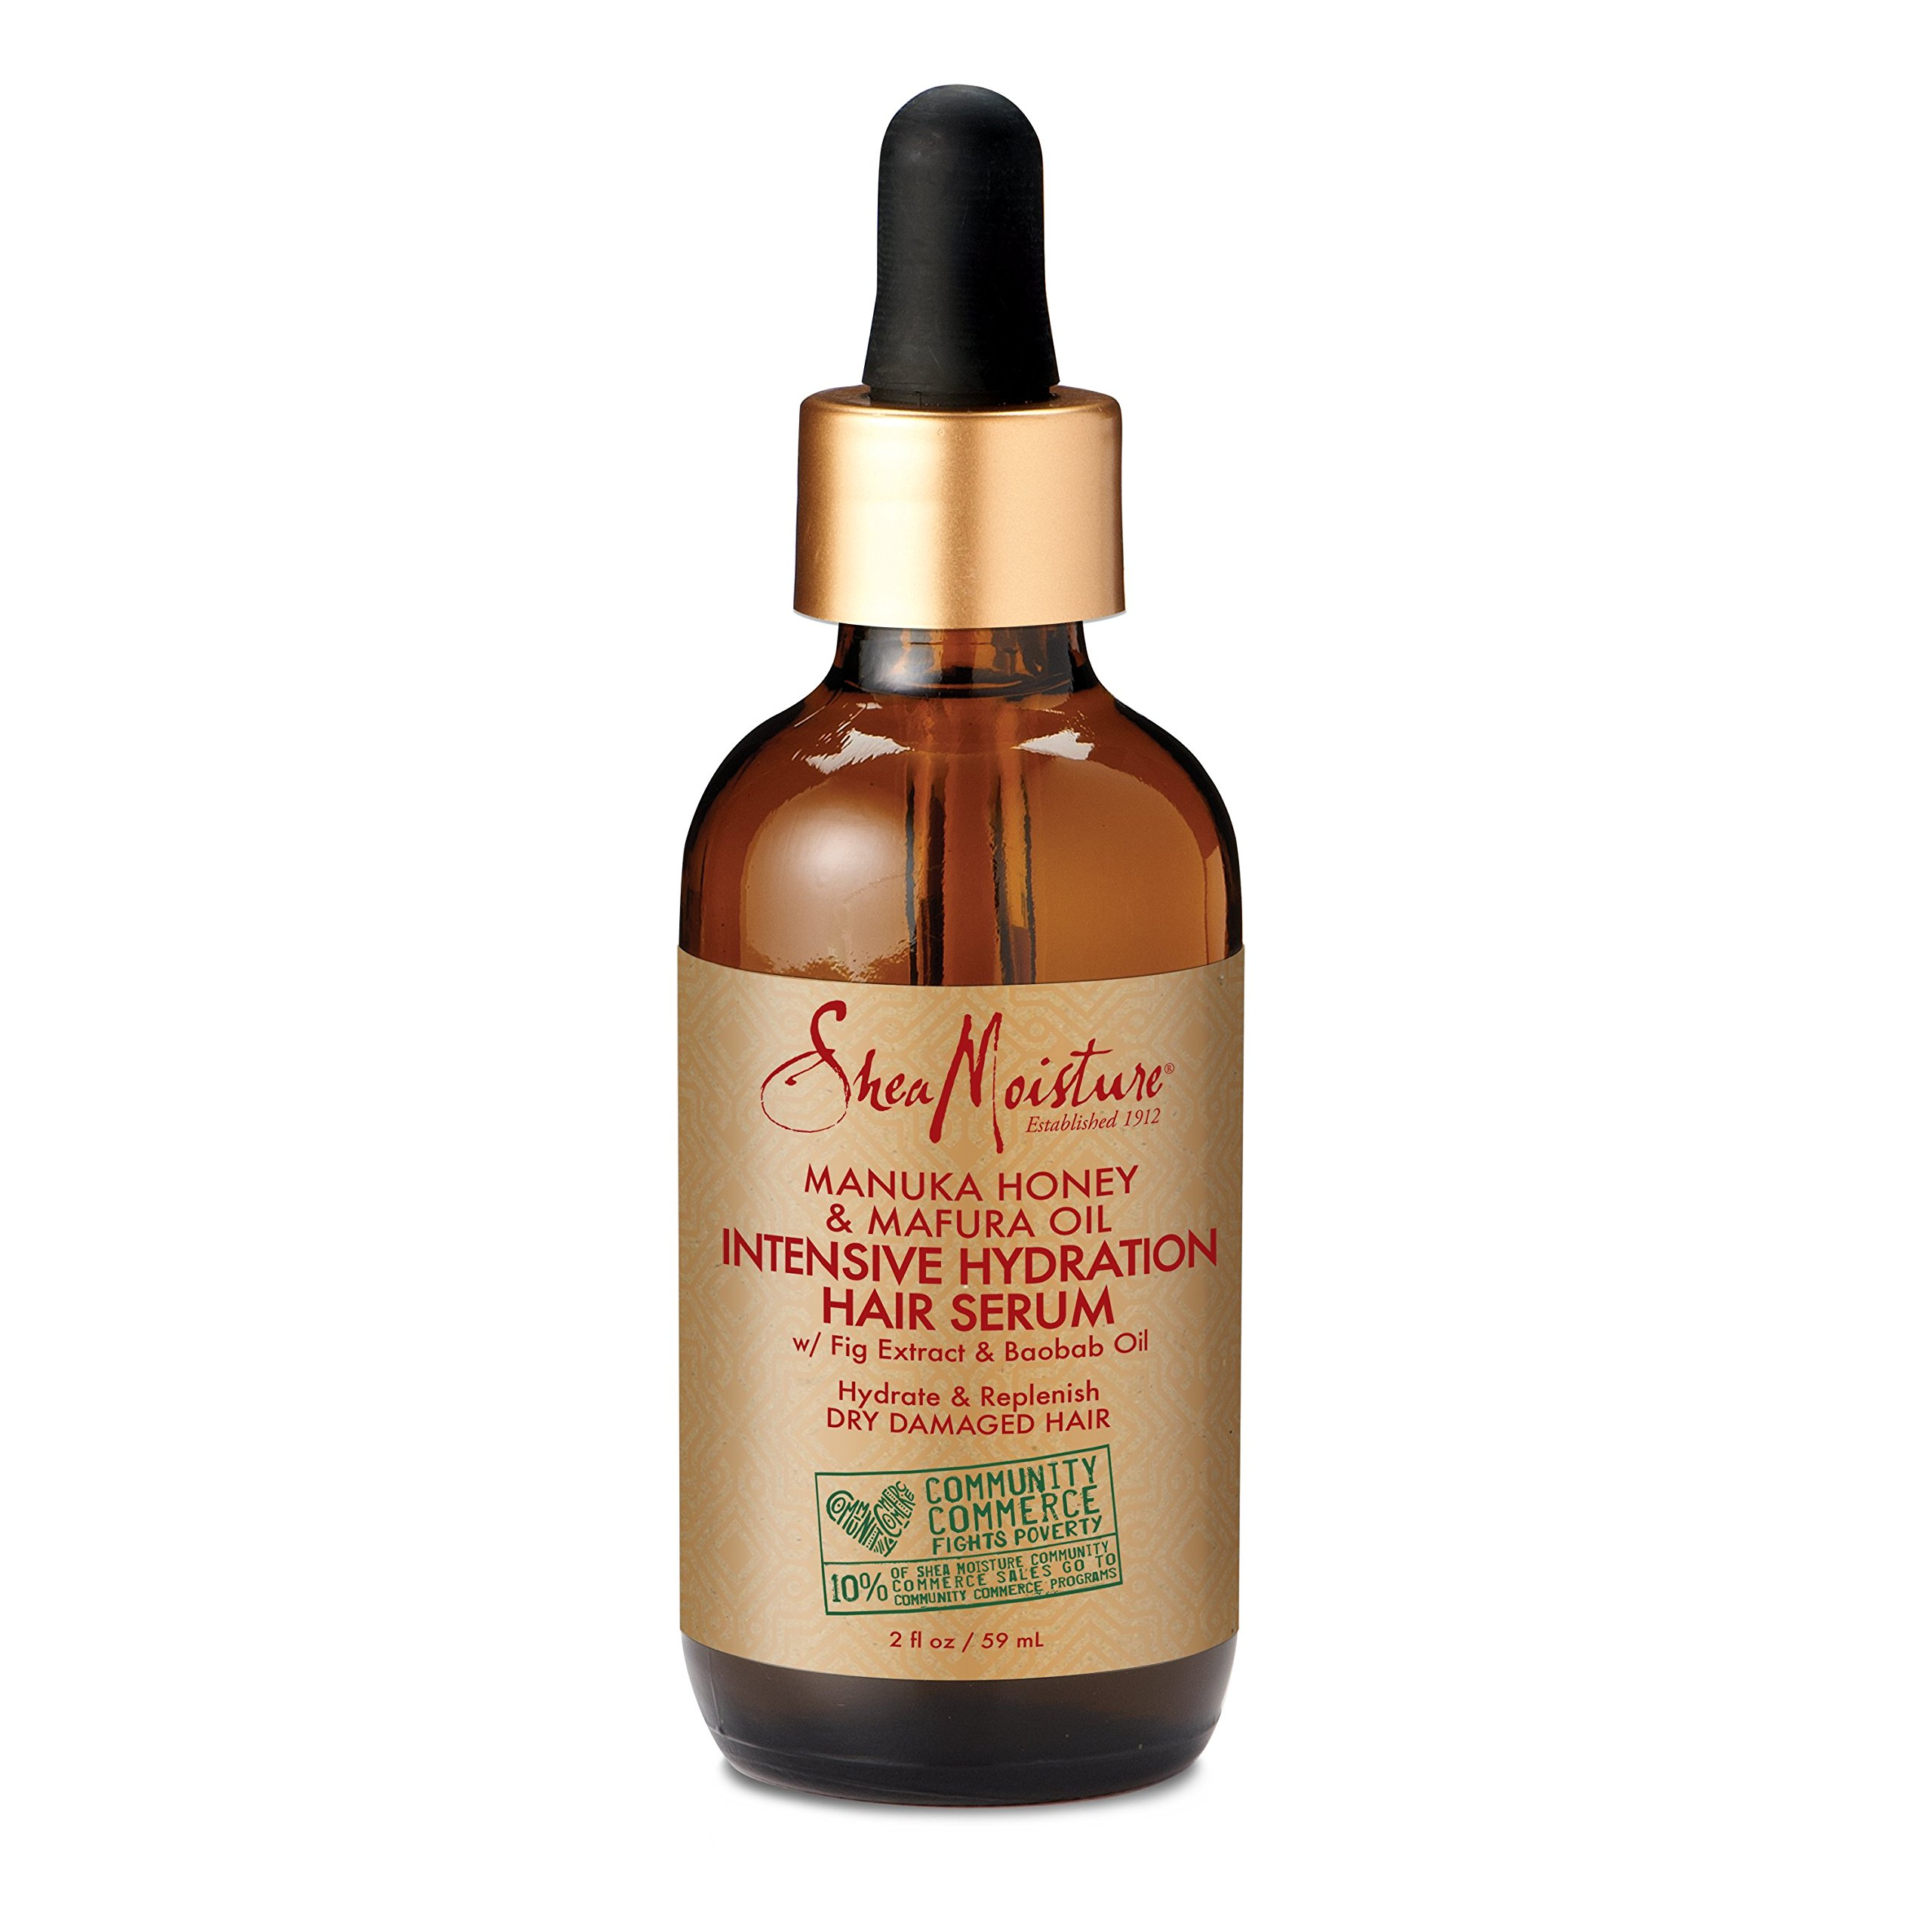 SheaMoisture Manuka Honey & Mafura Oil Intensive Hydration Complex for Dry Hair, 2 Oz